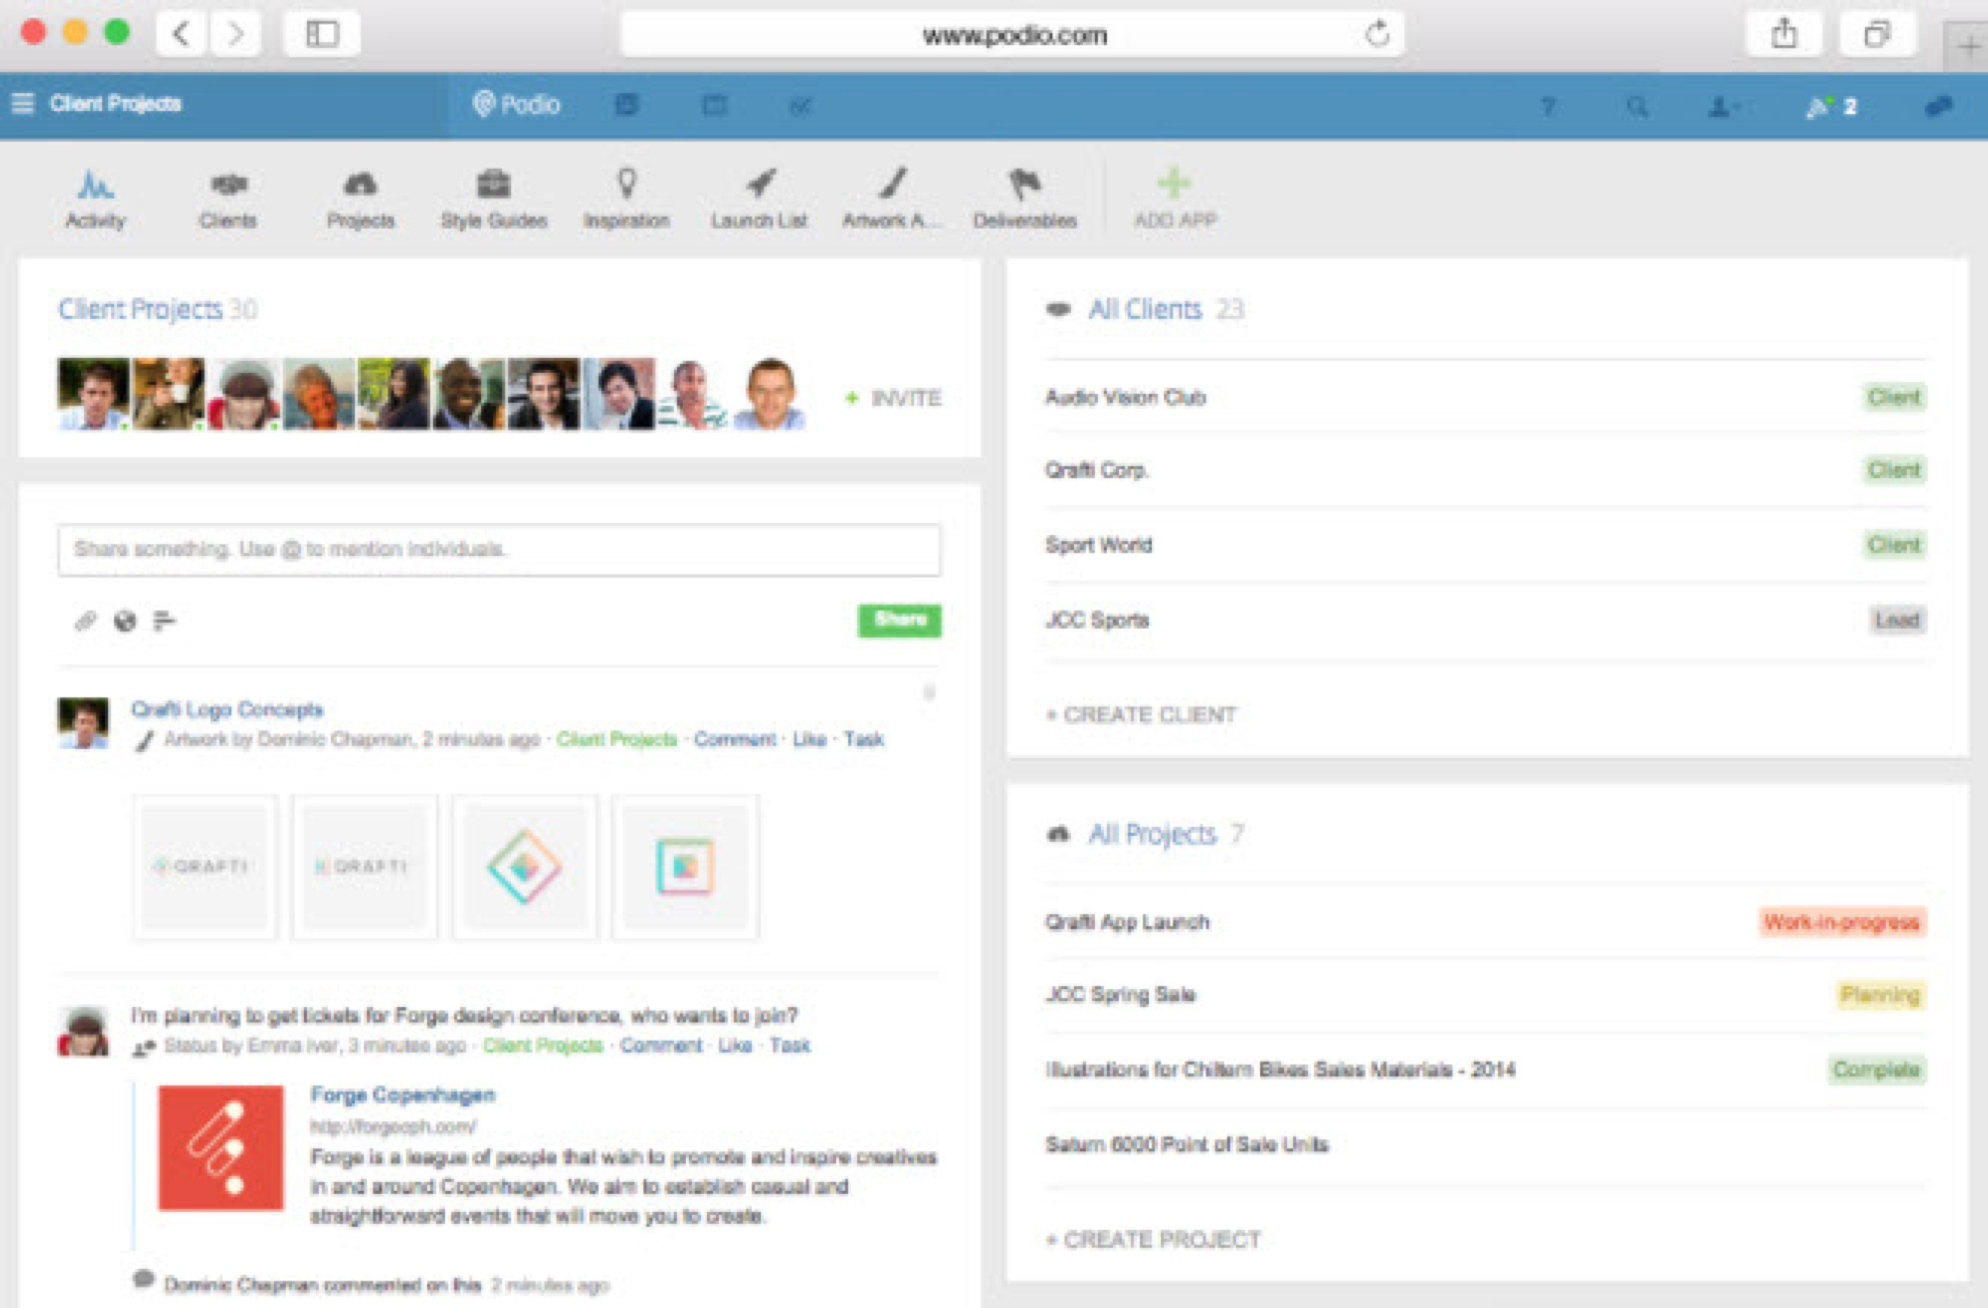 podio-project-management-software